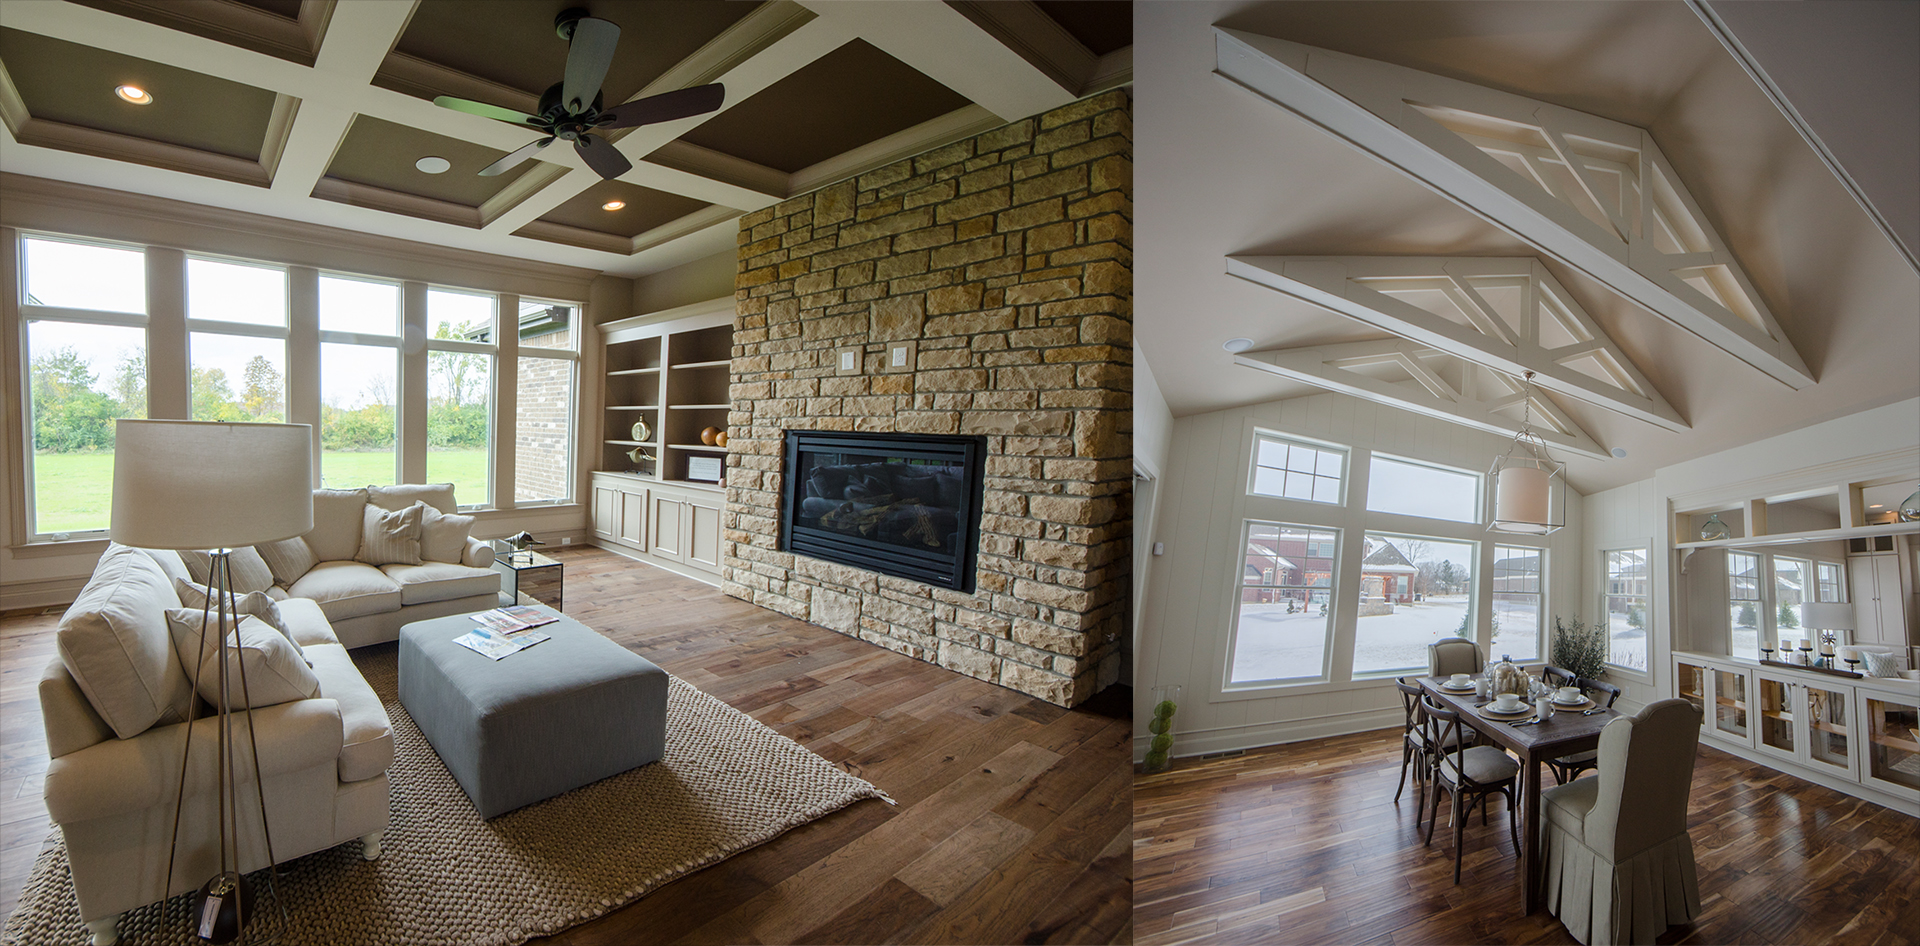 custom design homes. A Must Have Feature  Ceiling Types By Design Homes Top 10 Must Have Features For Today S